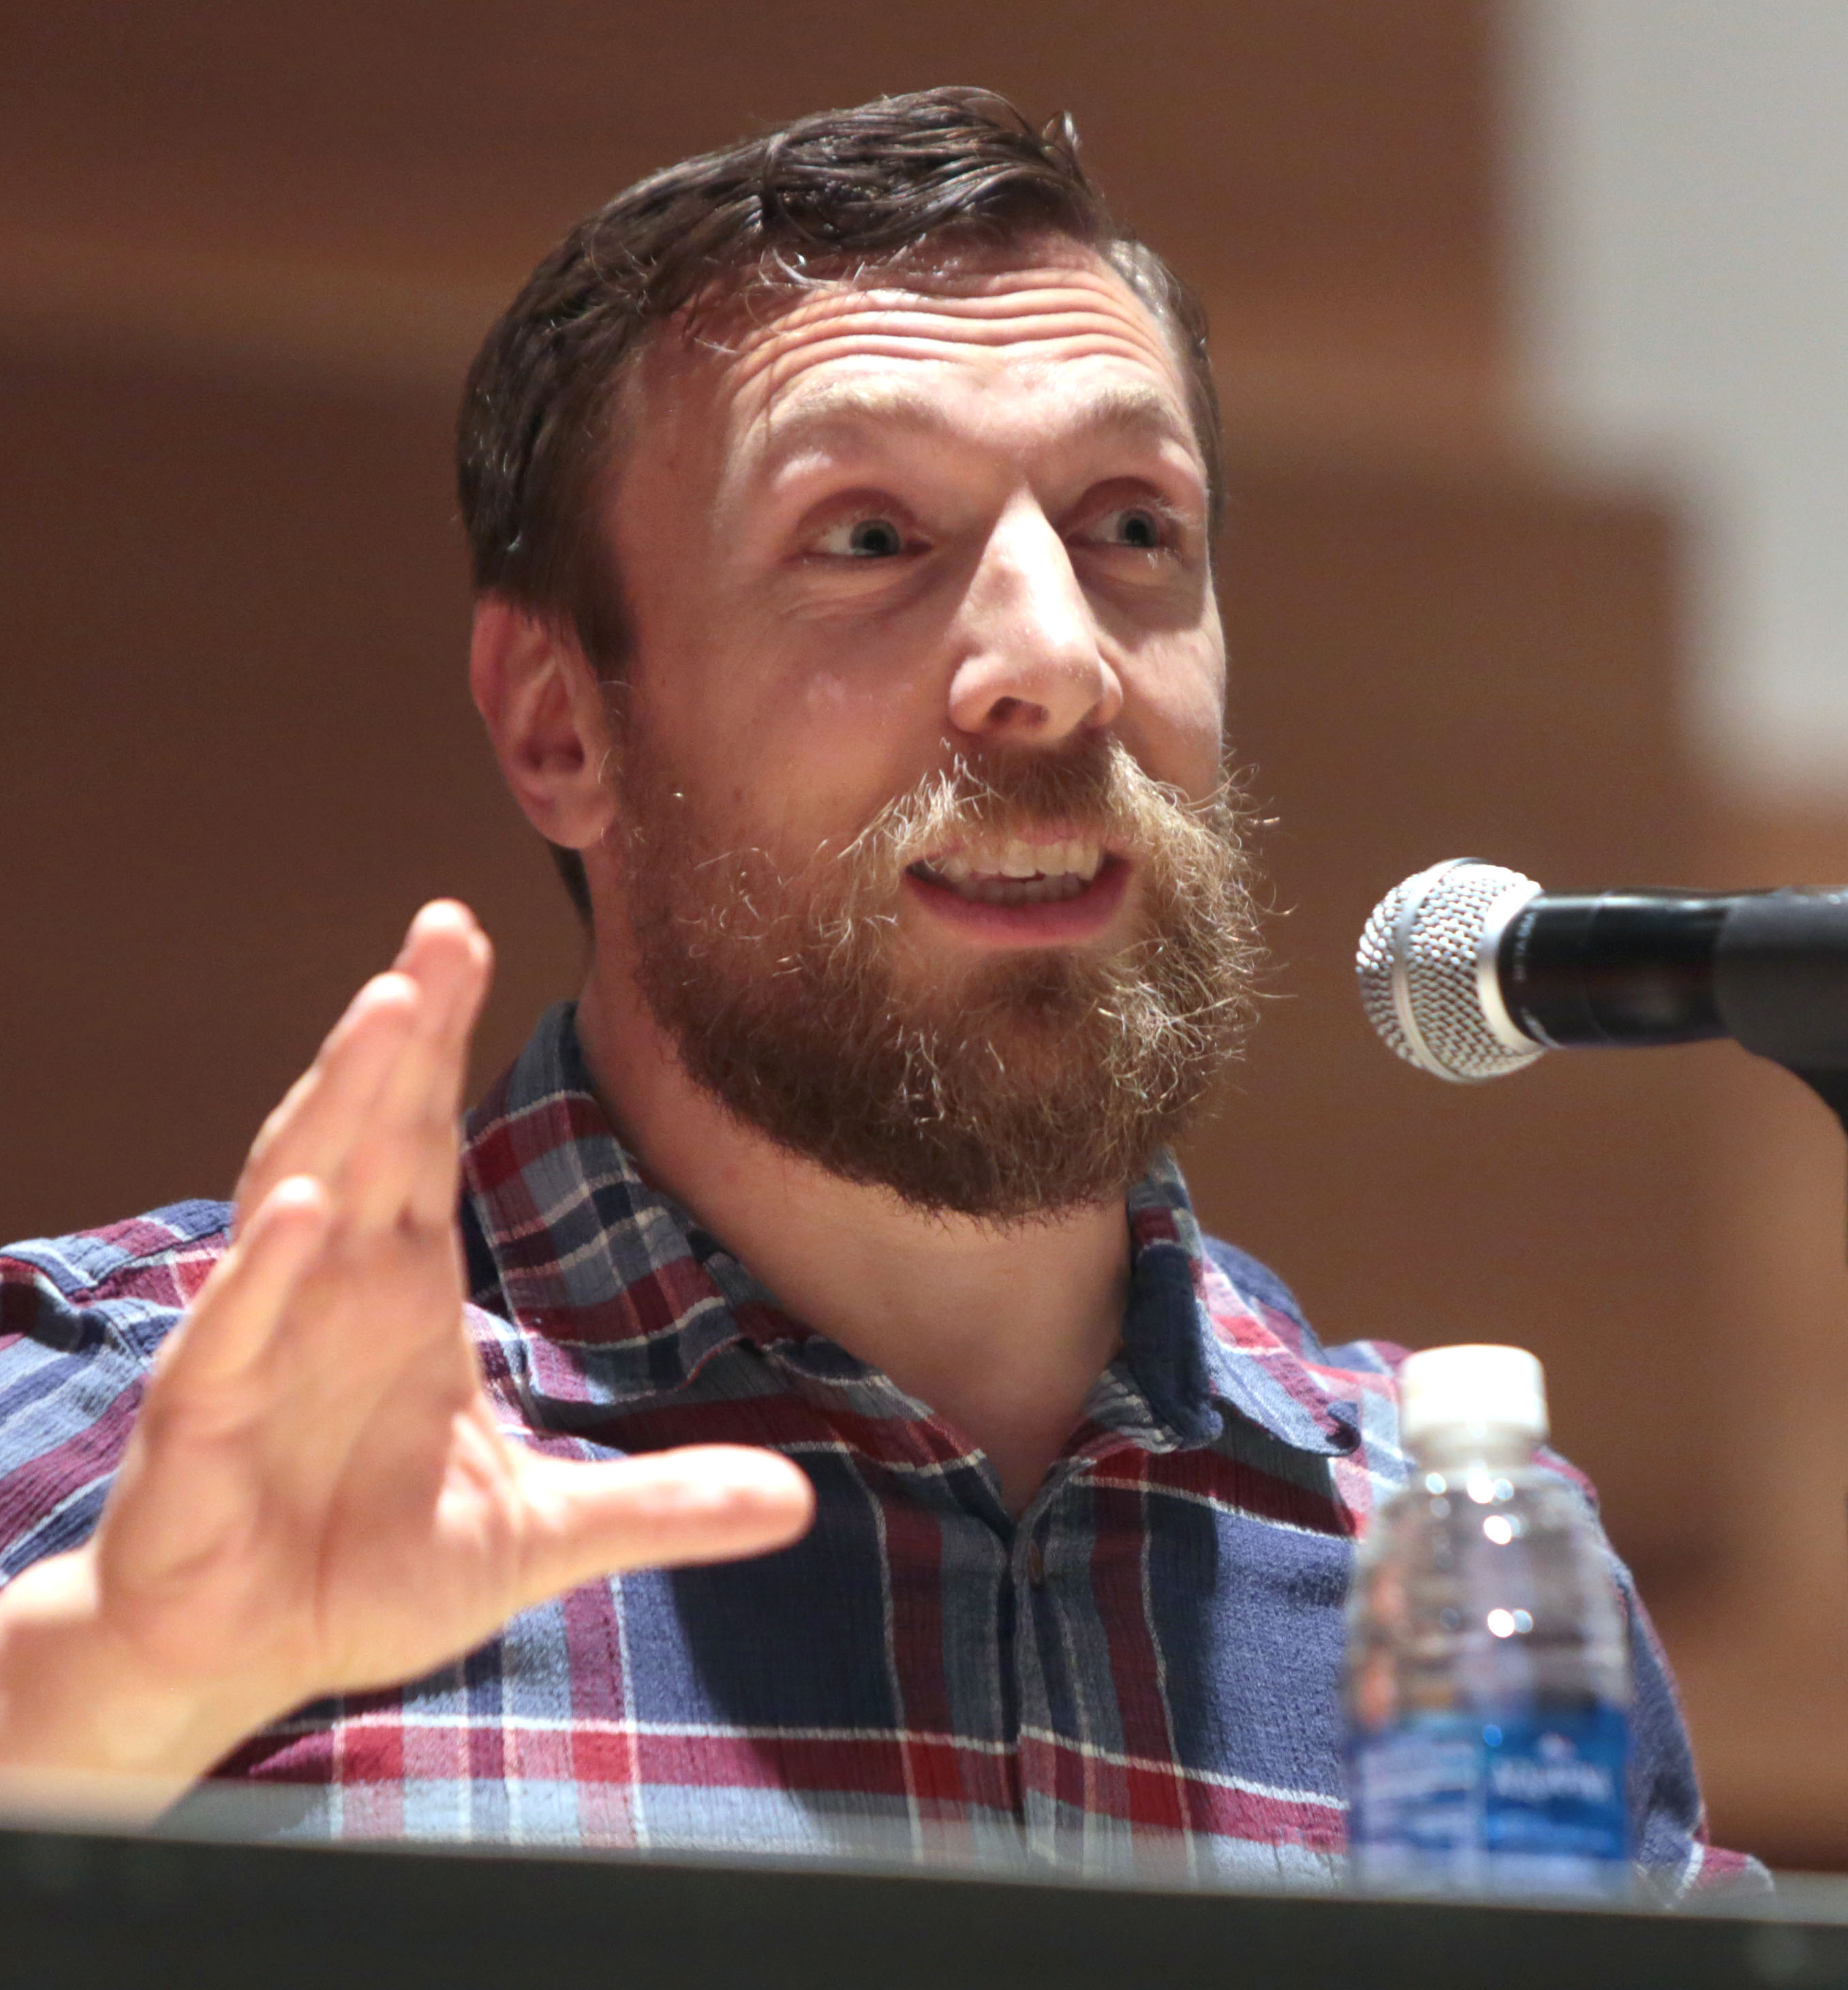 The 37-year old son of father (?) and mother(?) Daniel Bryan in 2018 photo. Daniel Bryan earned a  million dollar salary - leaving the net worth at 2 million in 2018